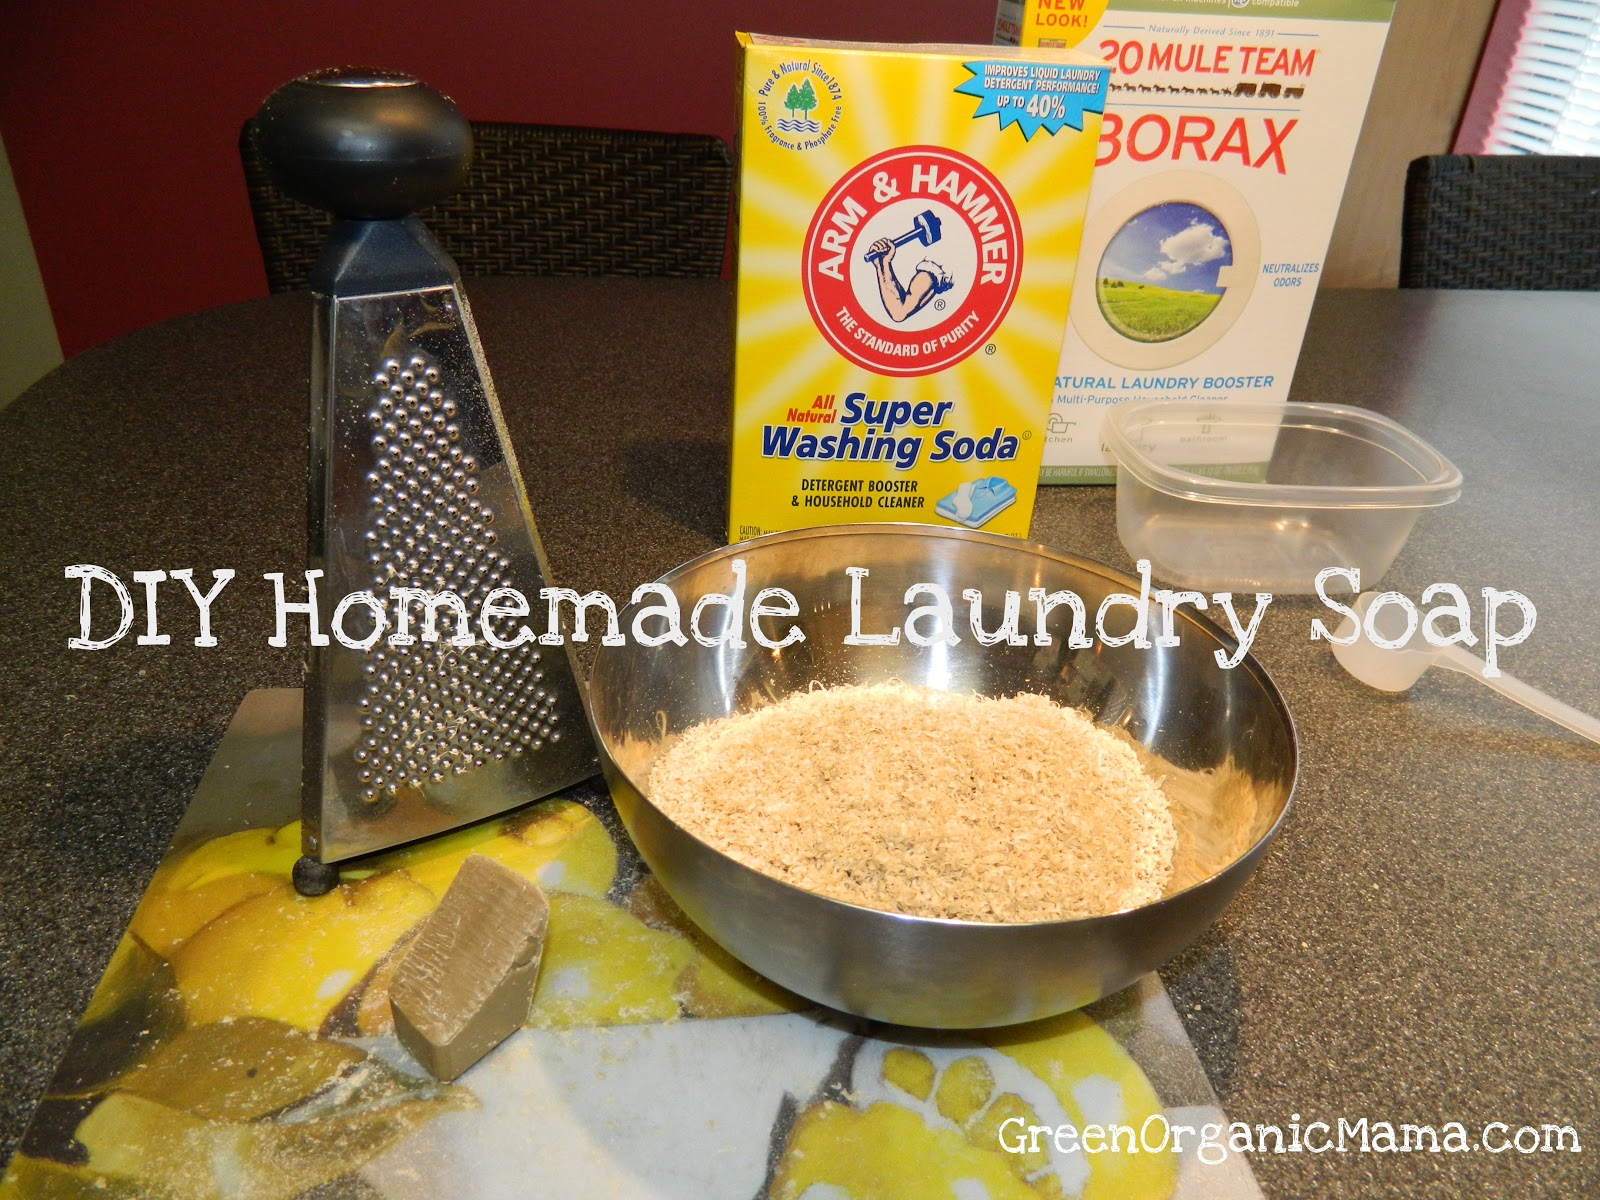 Our gang of mommy friends to the wonders of homemade laundry soap